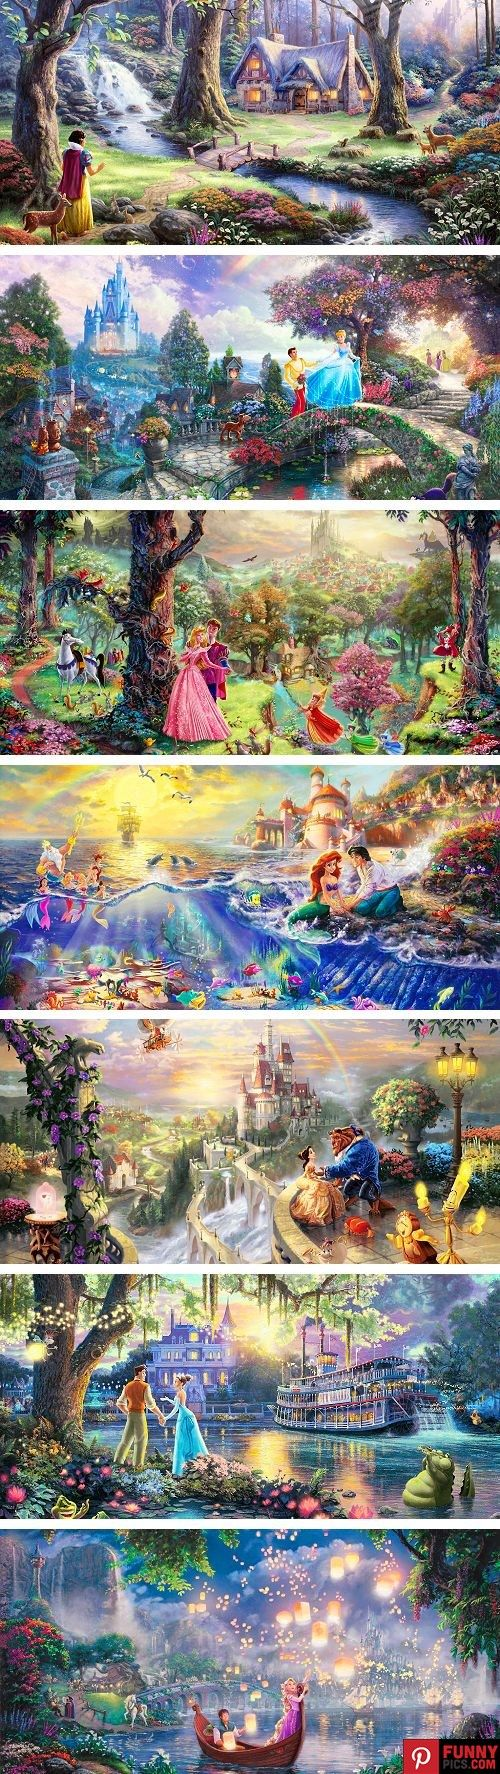 Disney Scenes by Thomas Kincade already own Cinderella and will one day own the rest